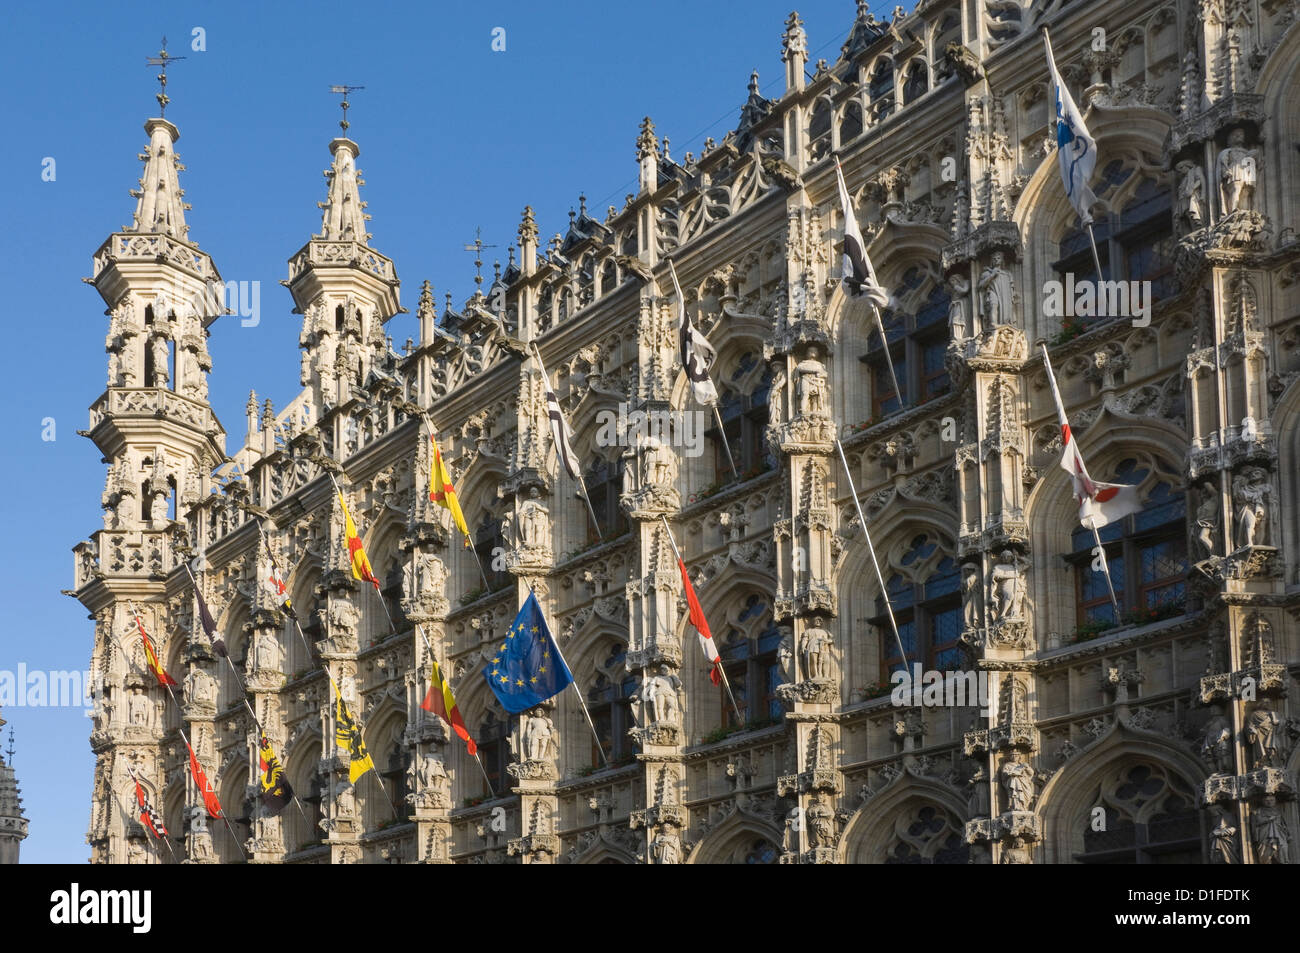 A detail of the stonework carving on the 15th century late Gothic Town Hall, Grote Markt, Leuven, Belgium, Europe Stock Photo